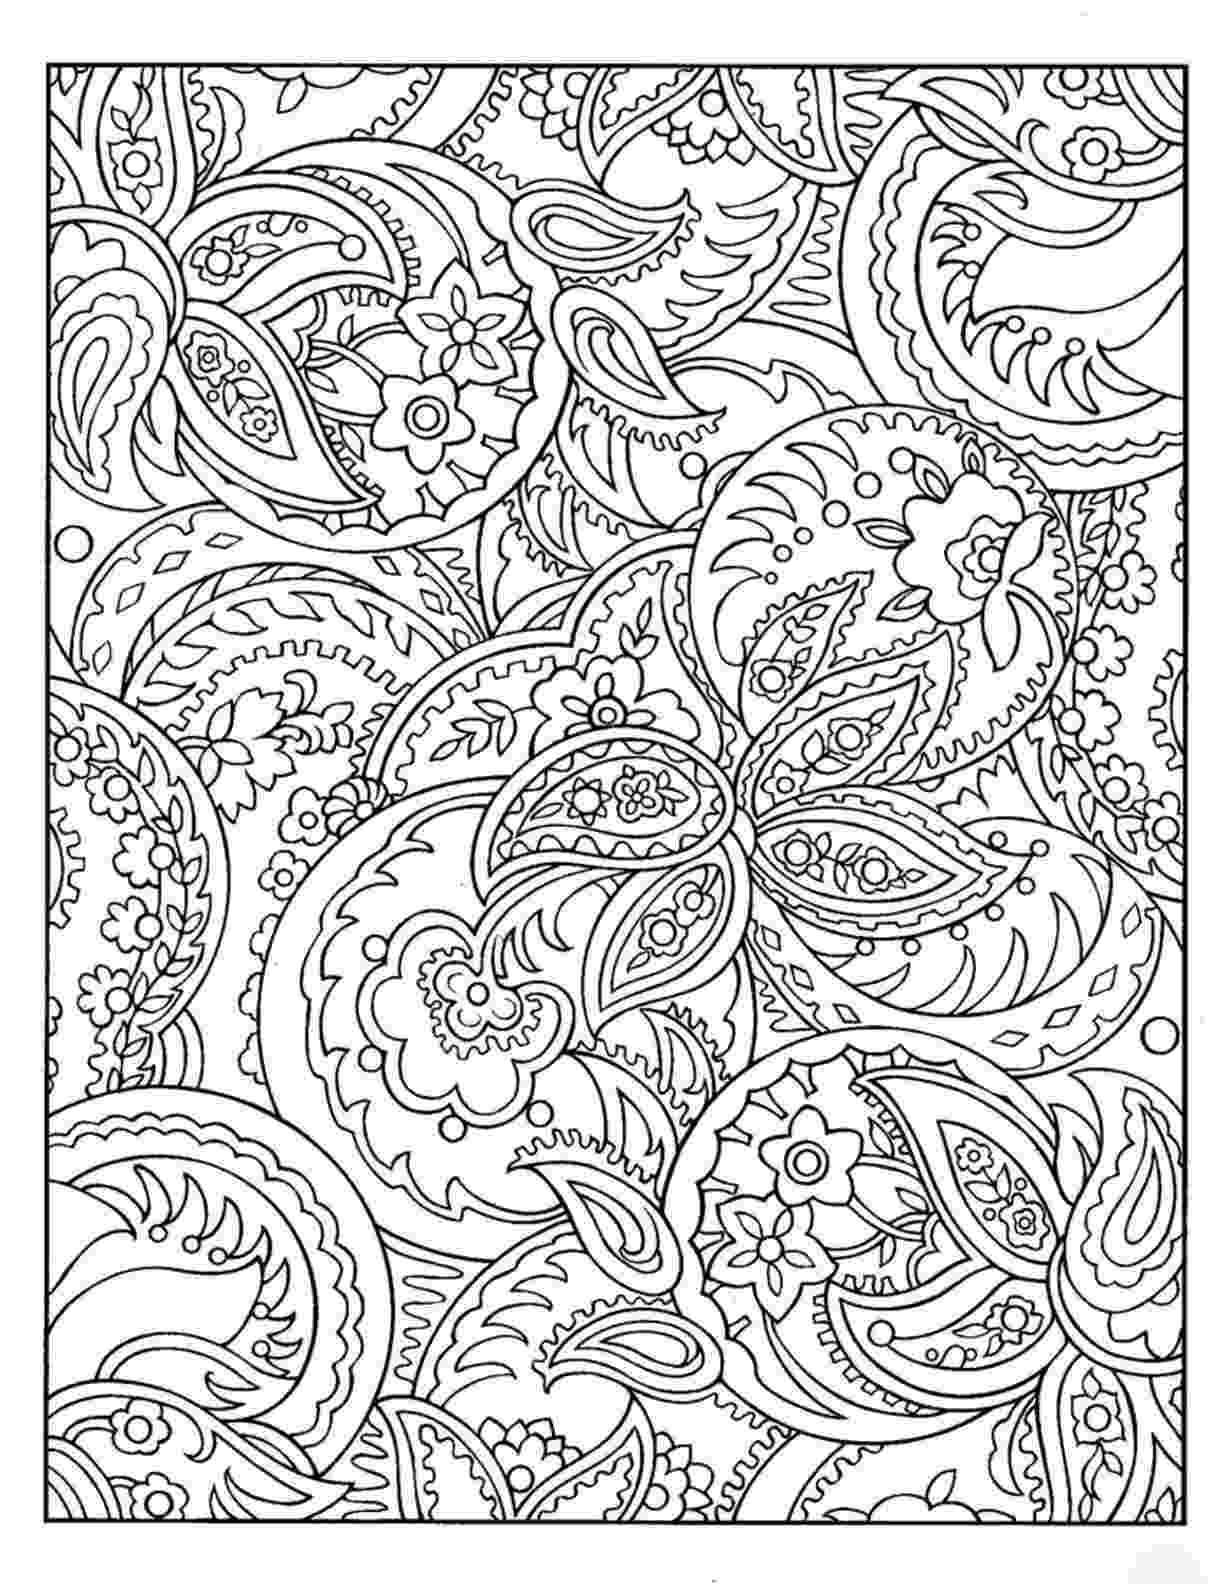 pattern coloring sheets don39t eat the paste rainbow coloring page pattern sheets coloring